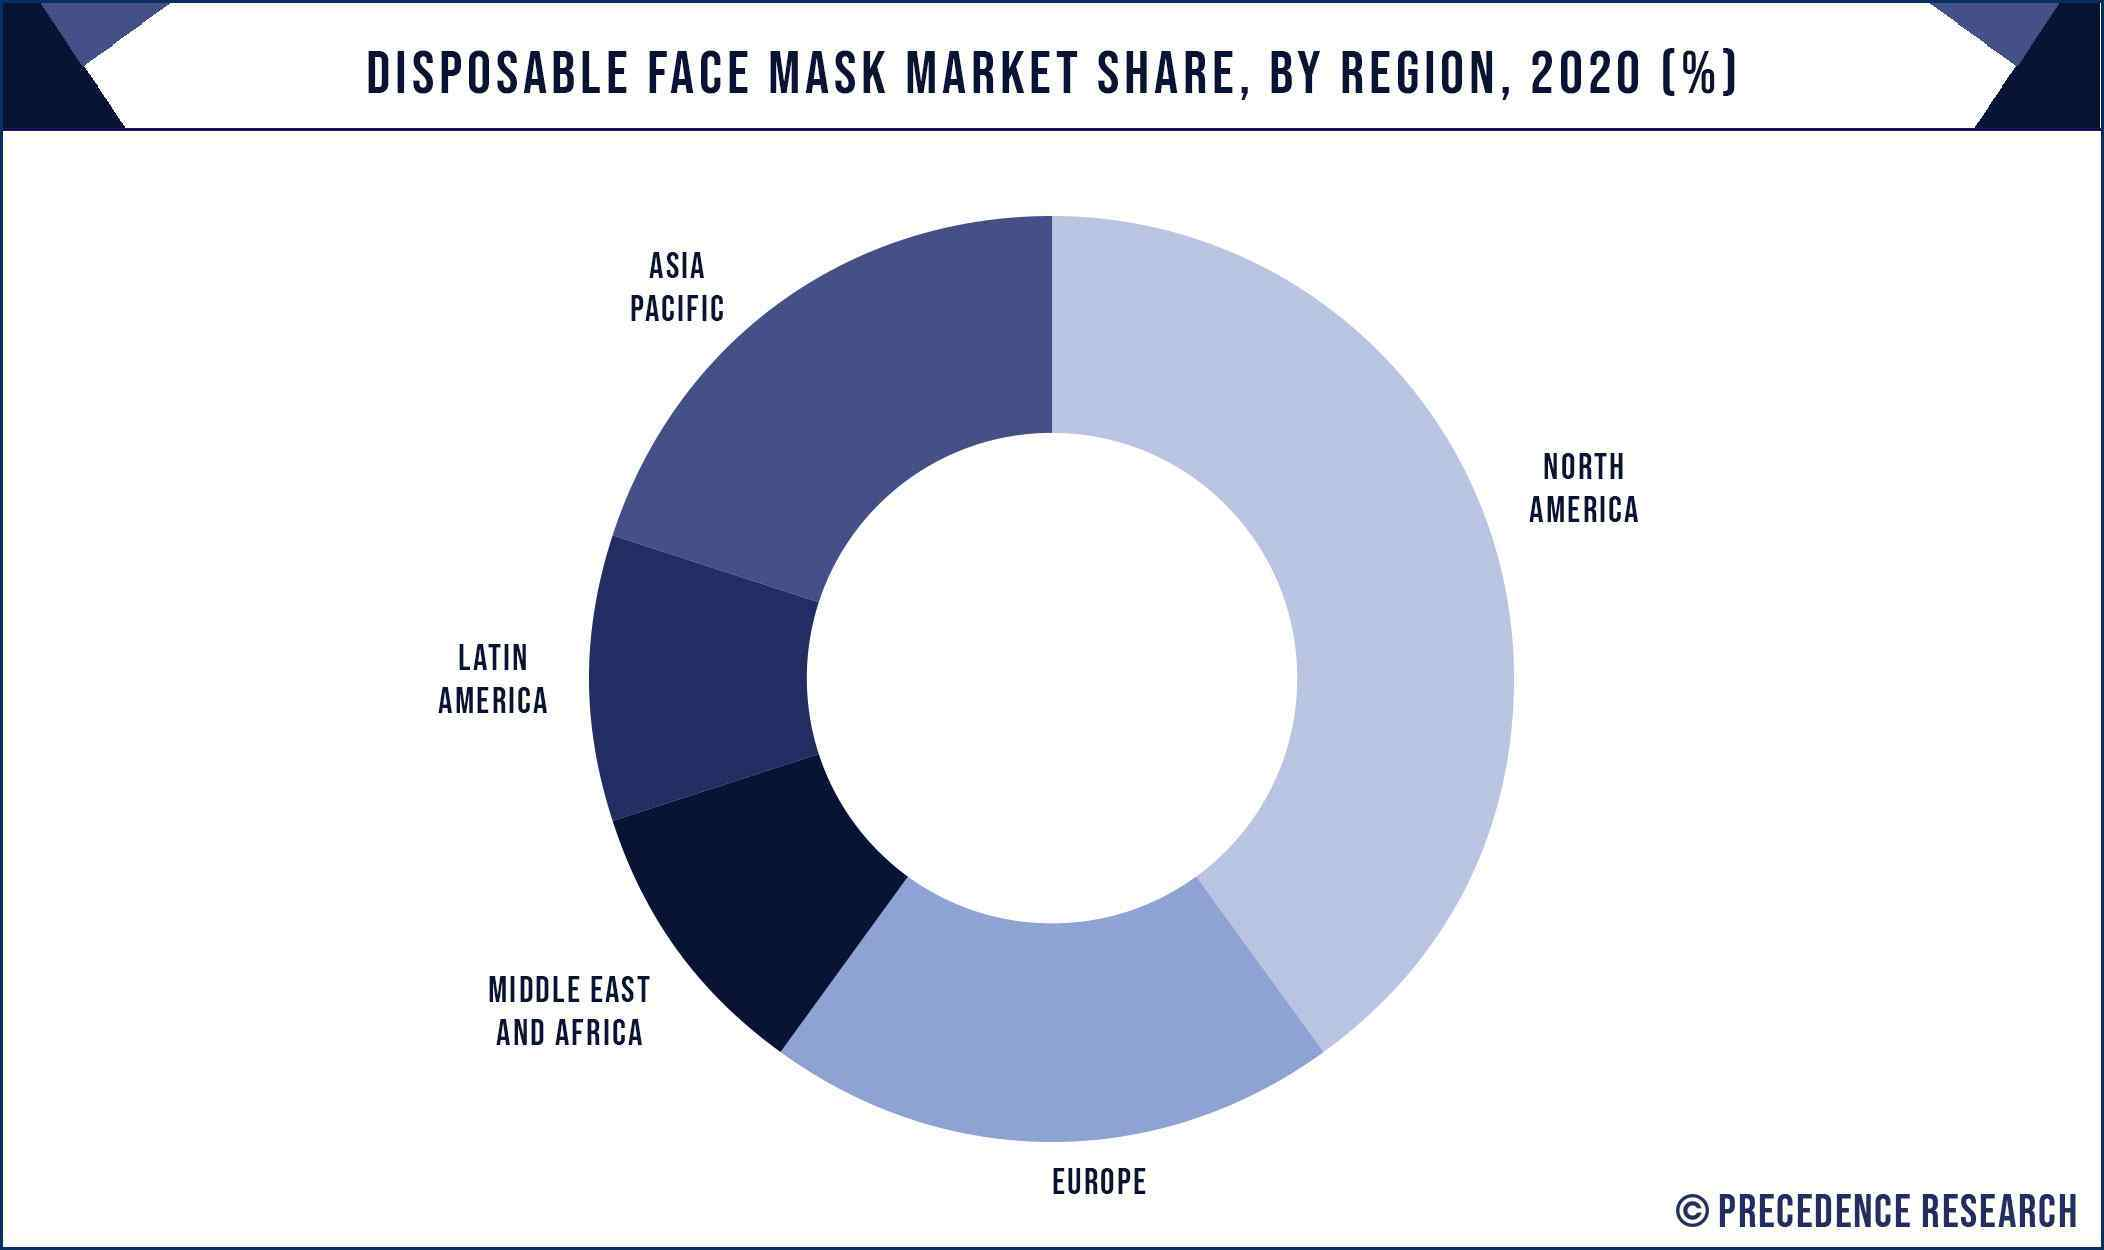 Disposable Face Mask Market Share, By Region, 2020 (%)